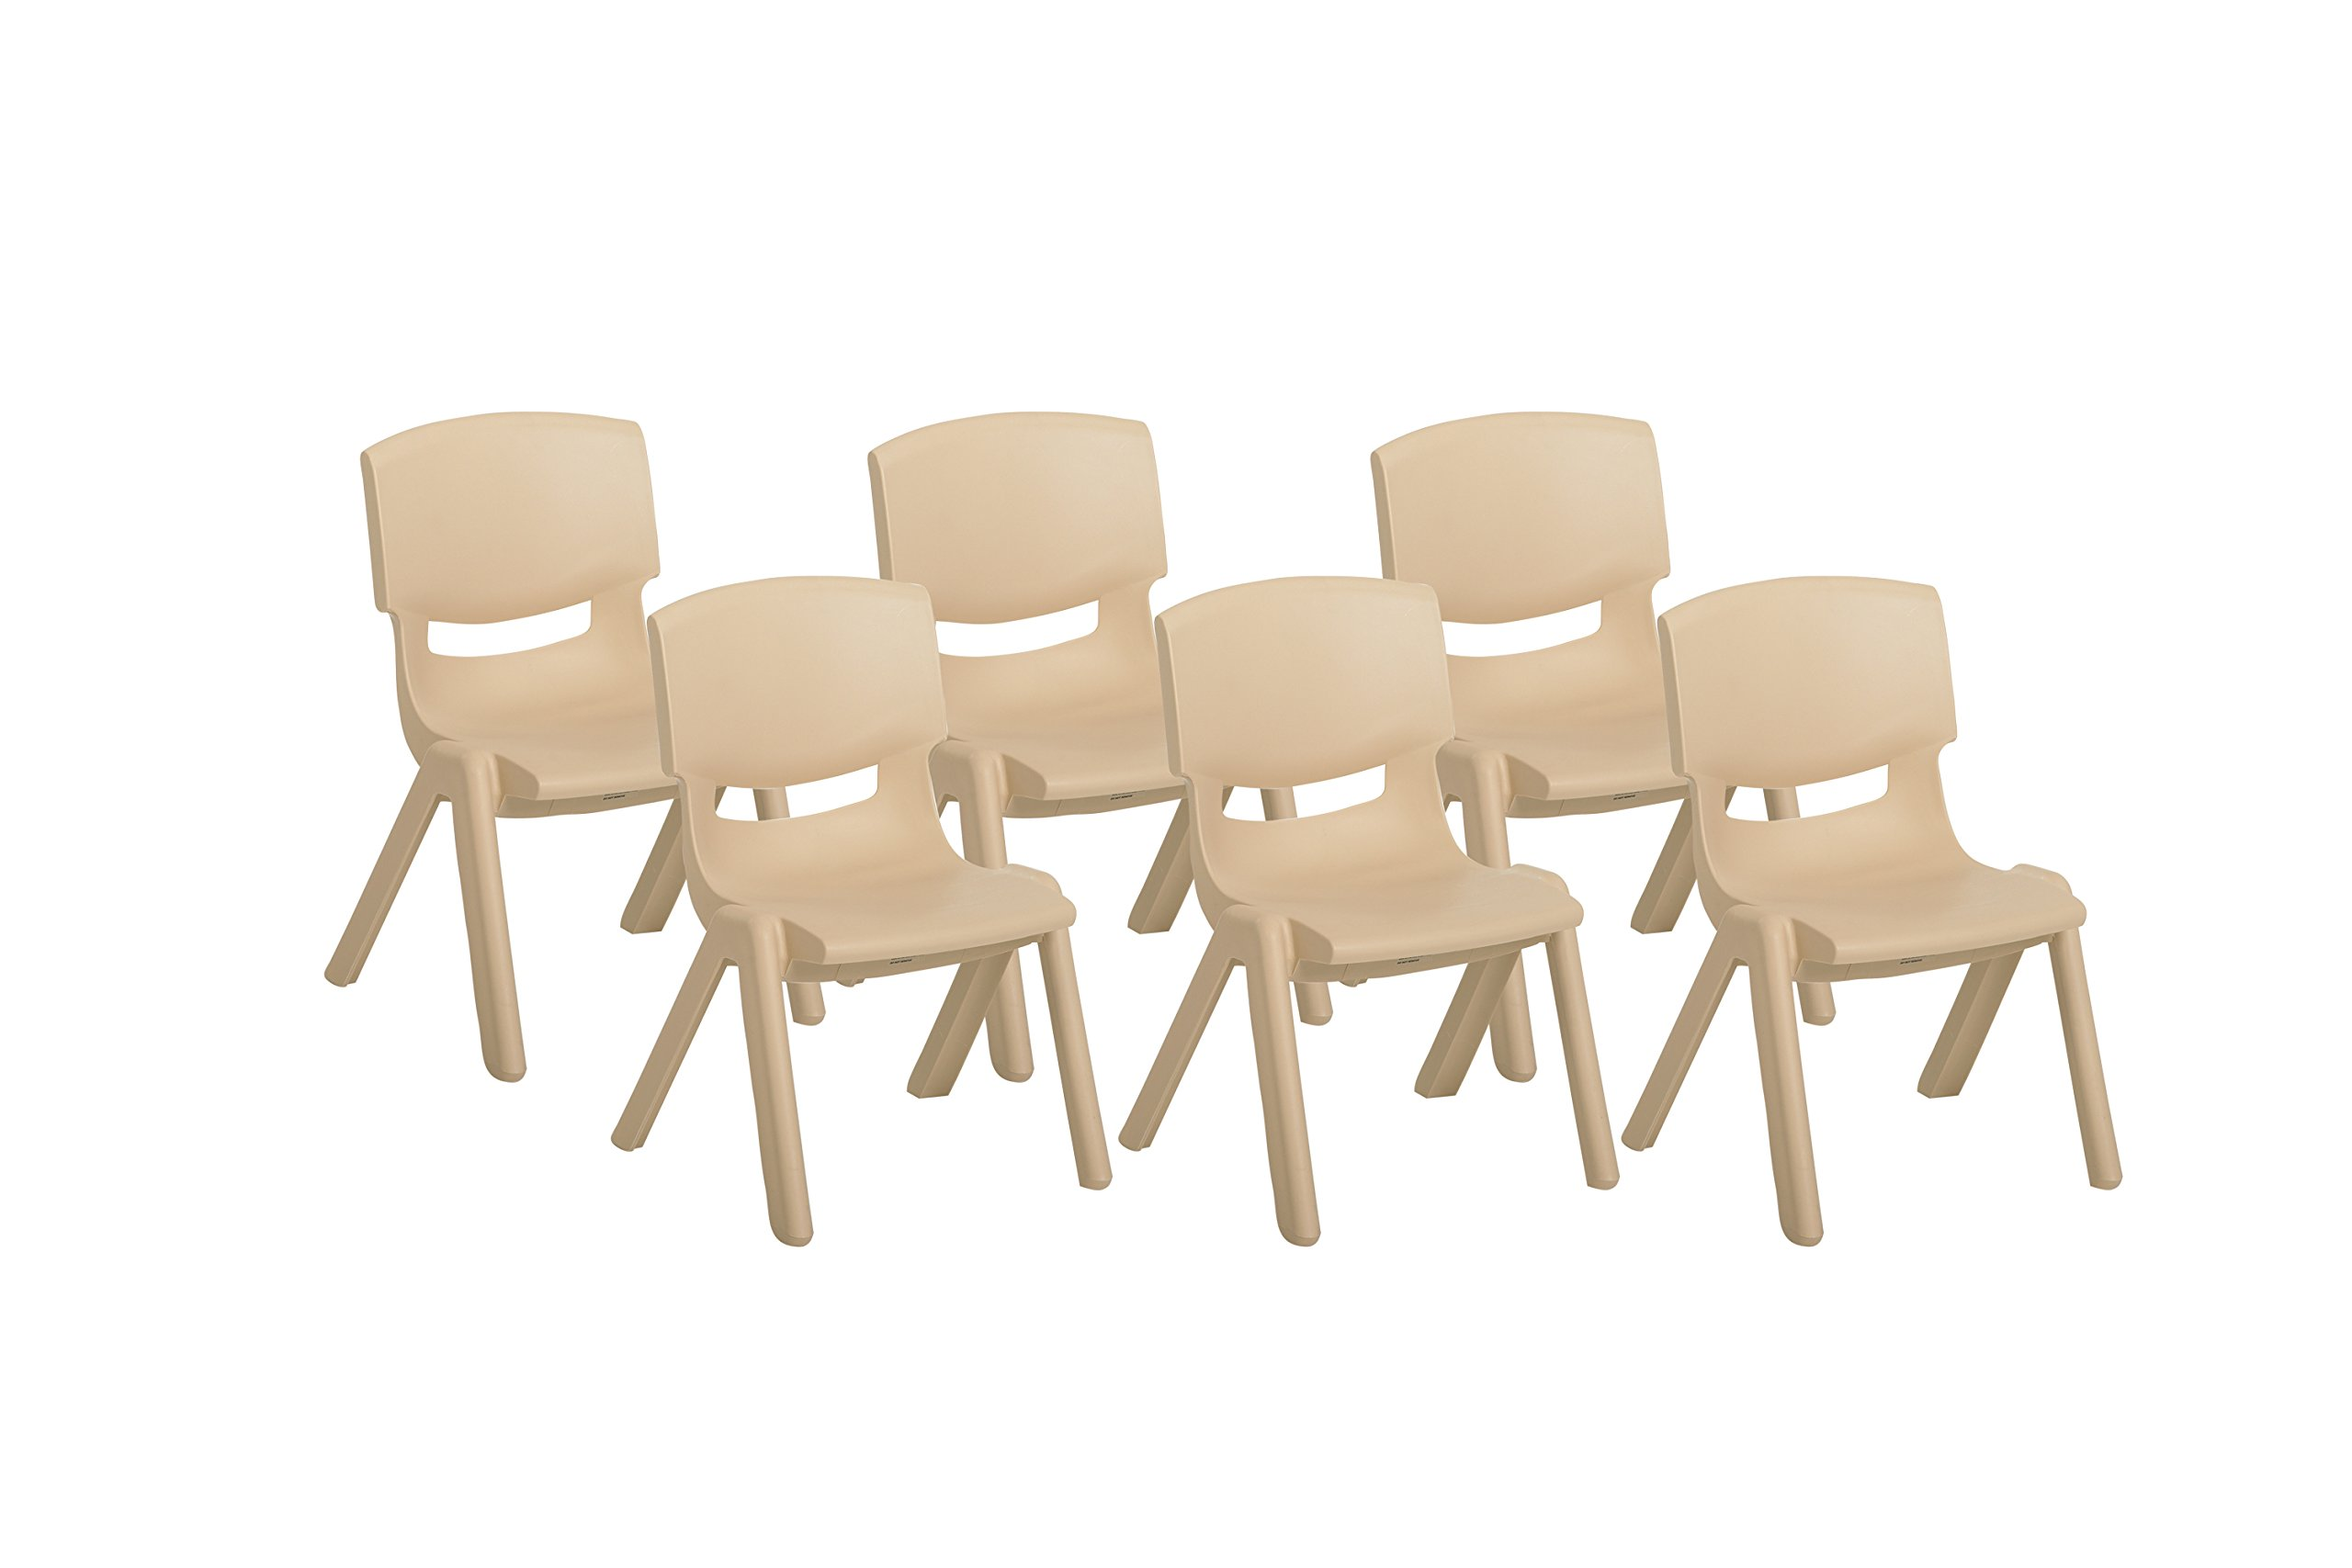 ECR4Kids School Stack Resin Chair, Indoor/Outdoor Plastic Stacking Chairs for Kids, 10 inch Seat Height, Sand (6-Pack)